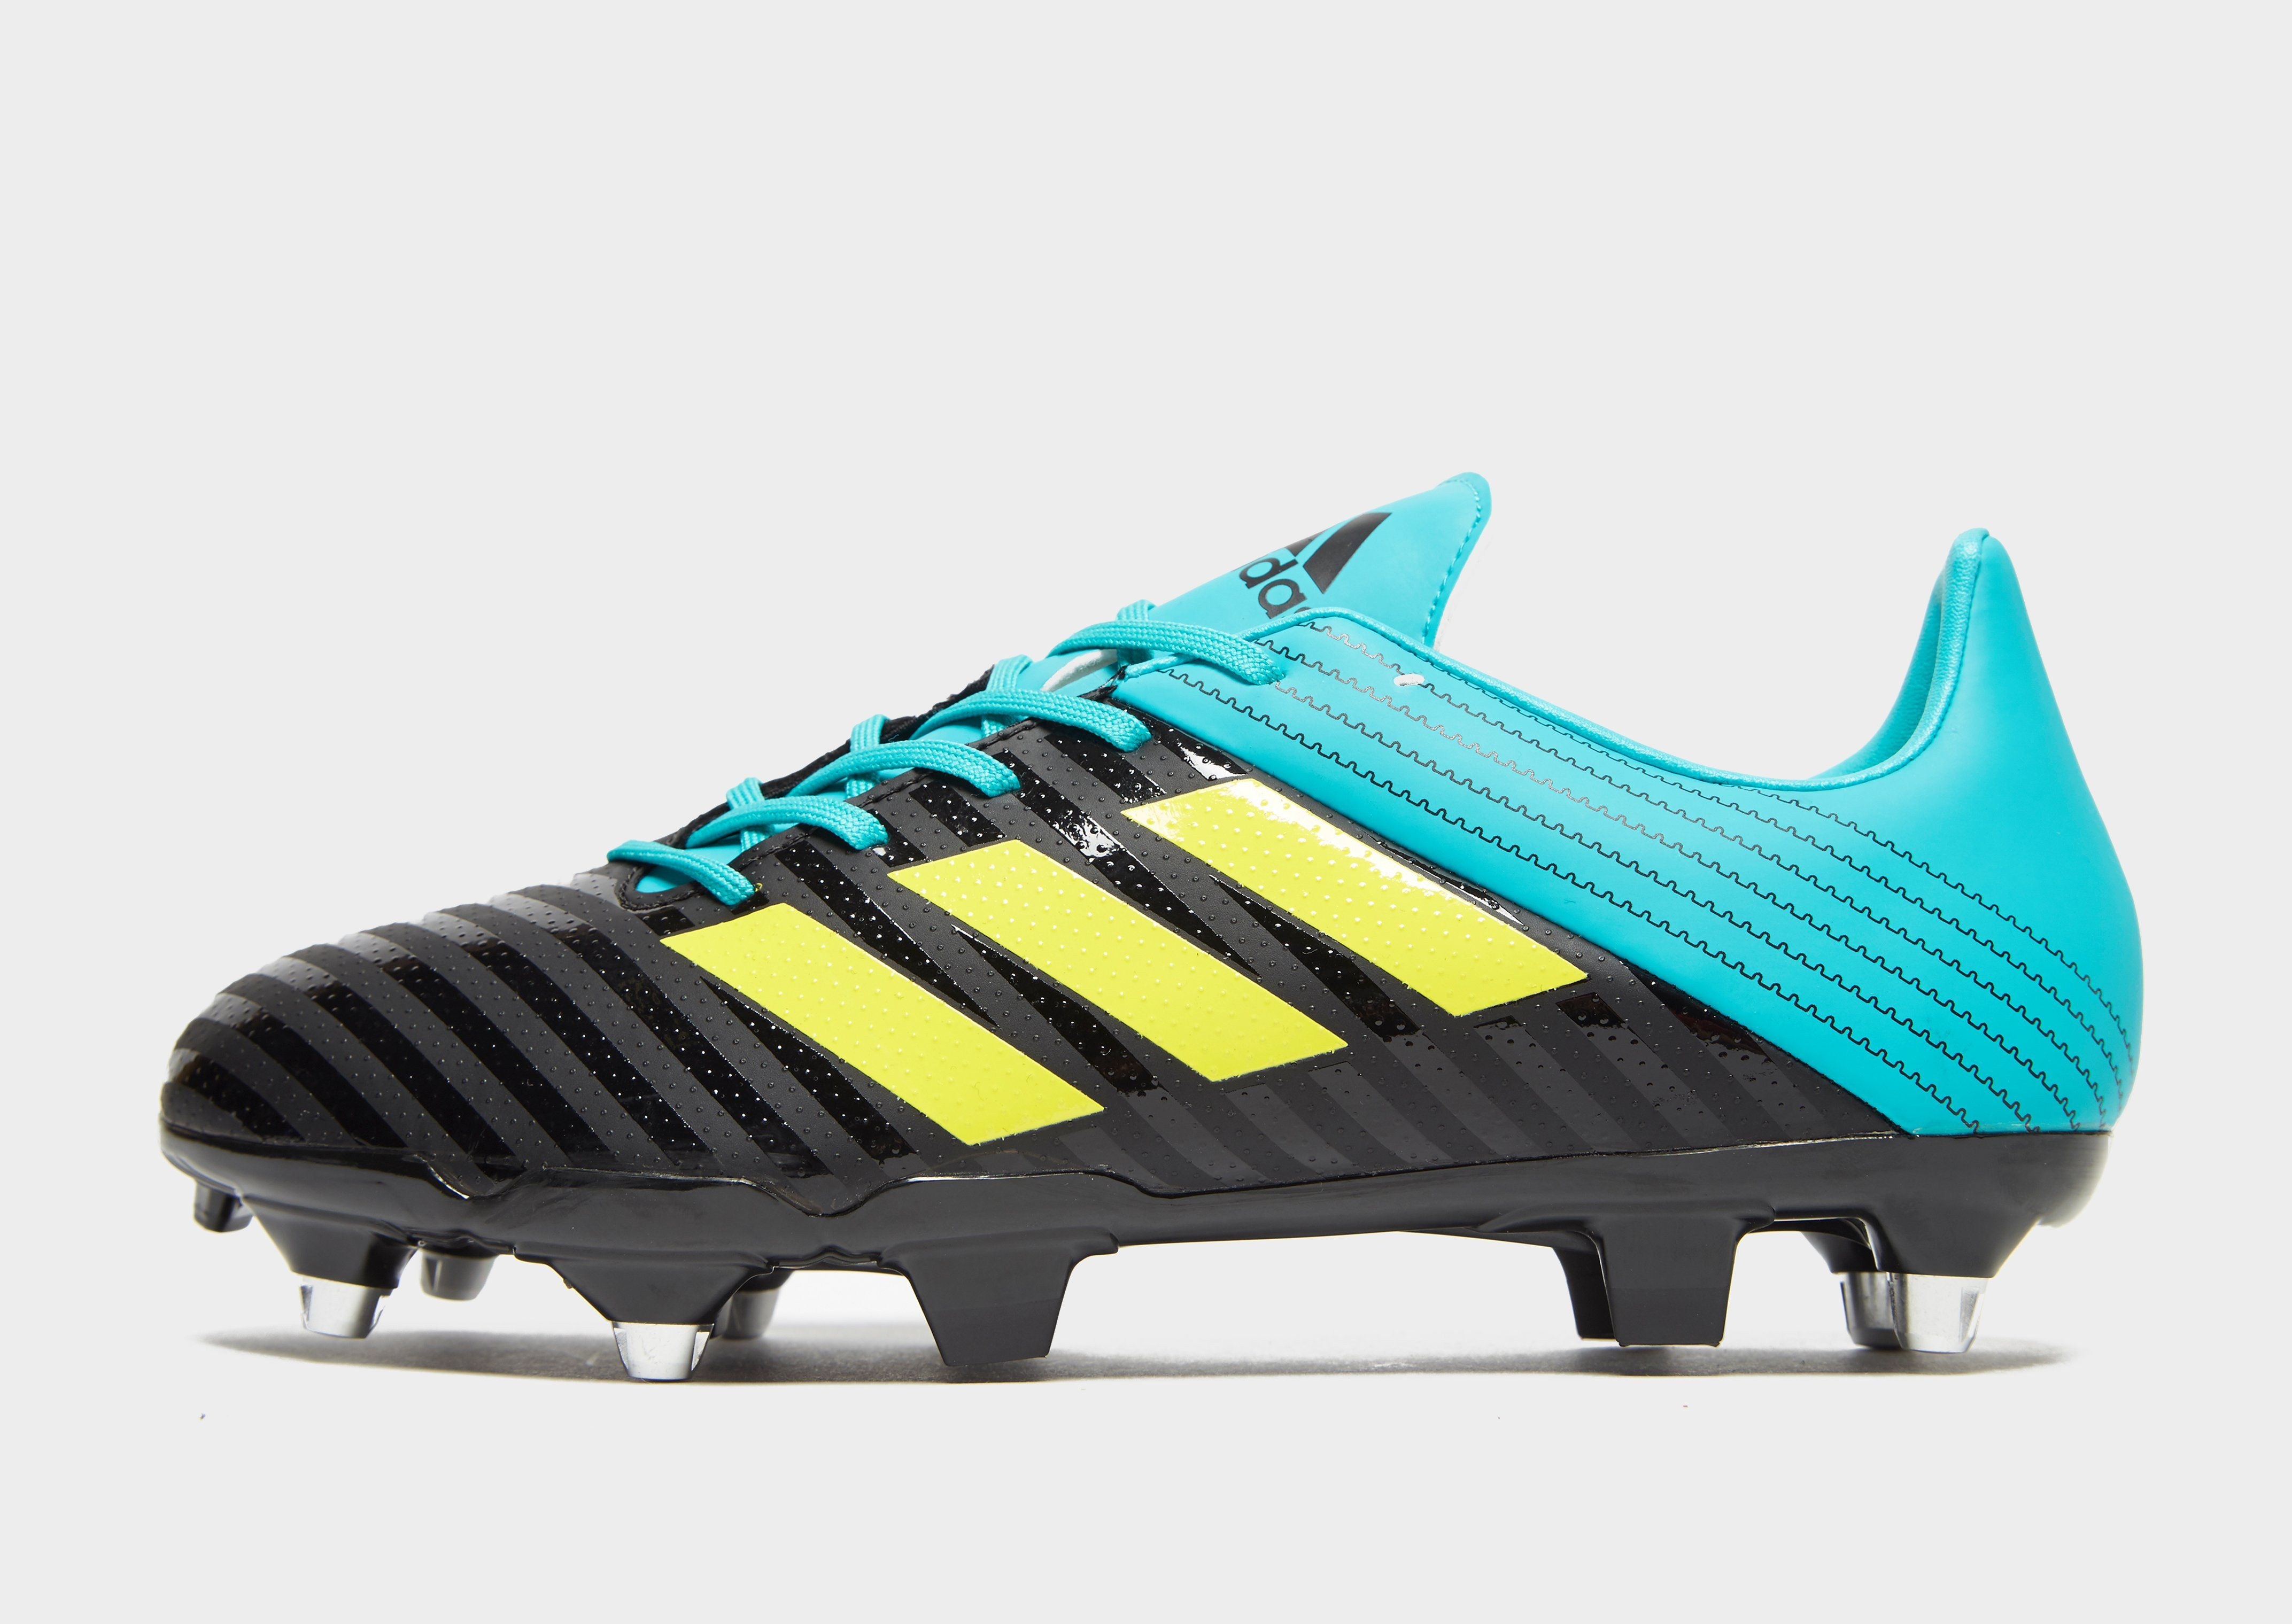 f13bf8c5382 adidas Malice SG Rugby Boots